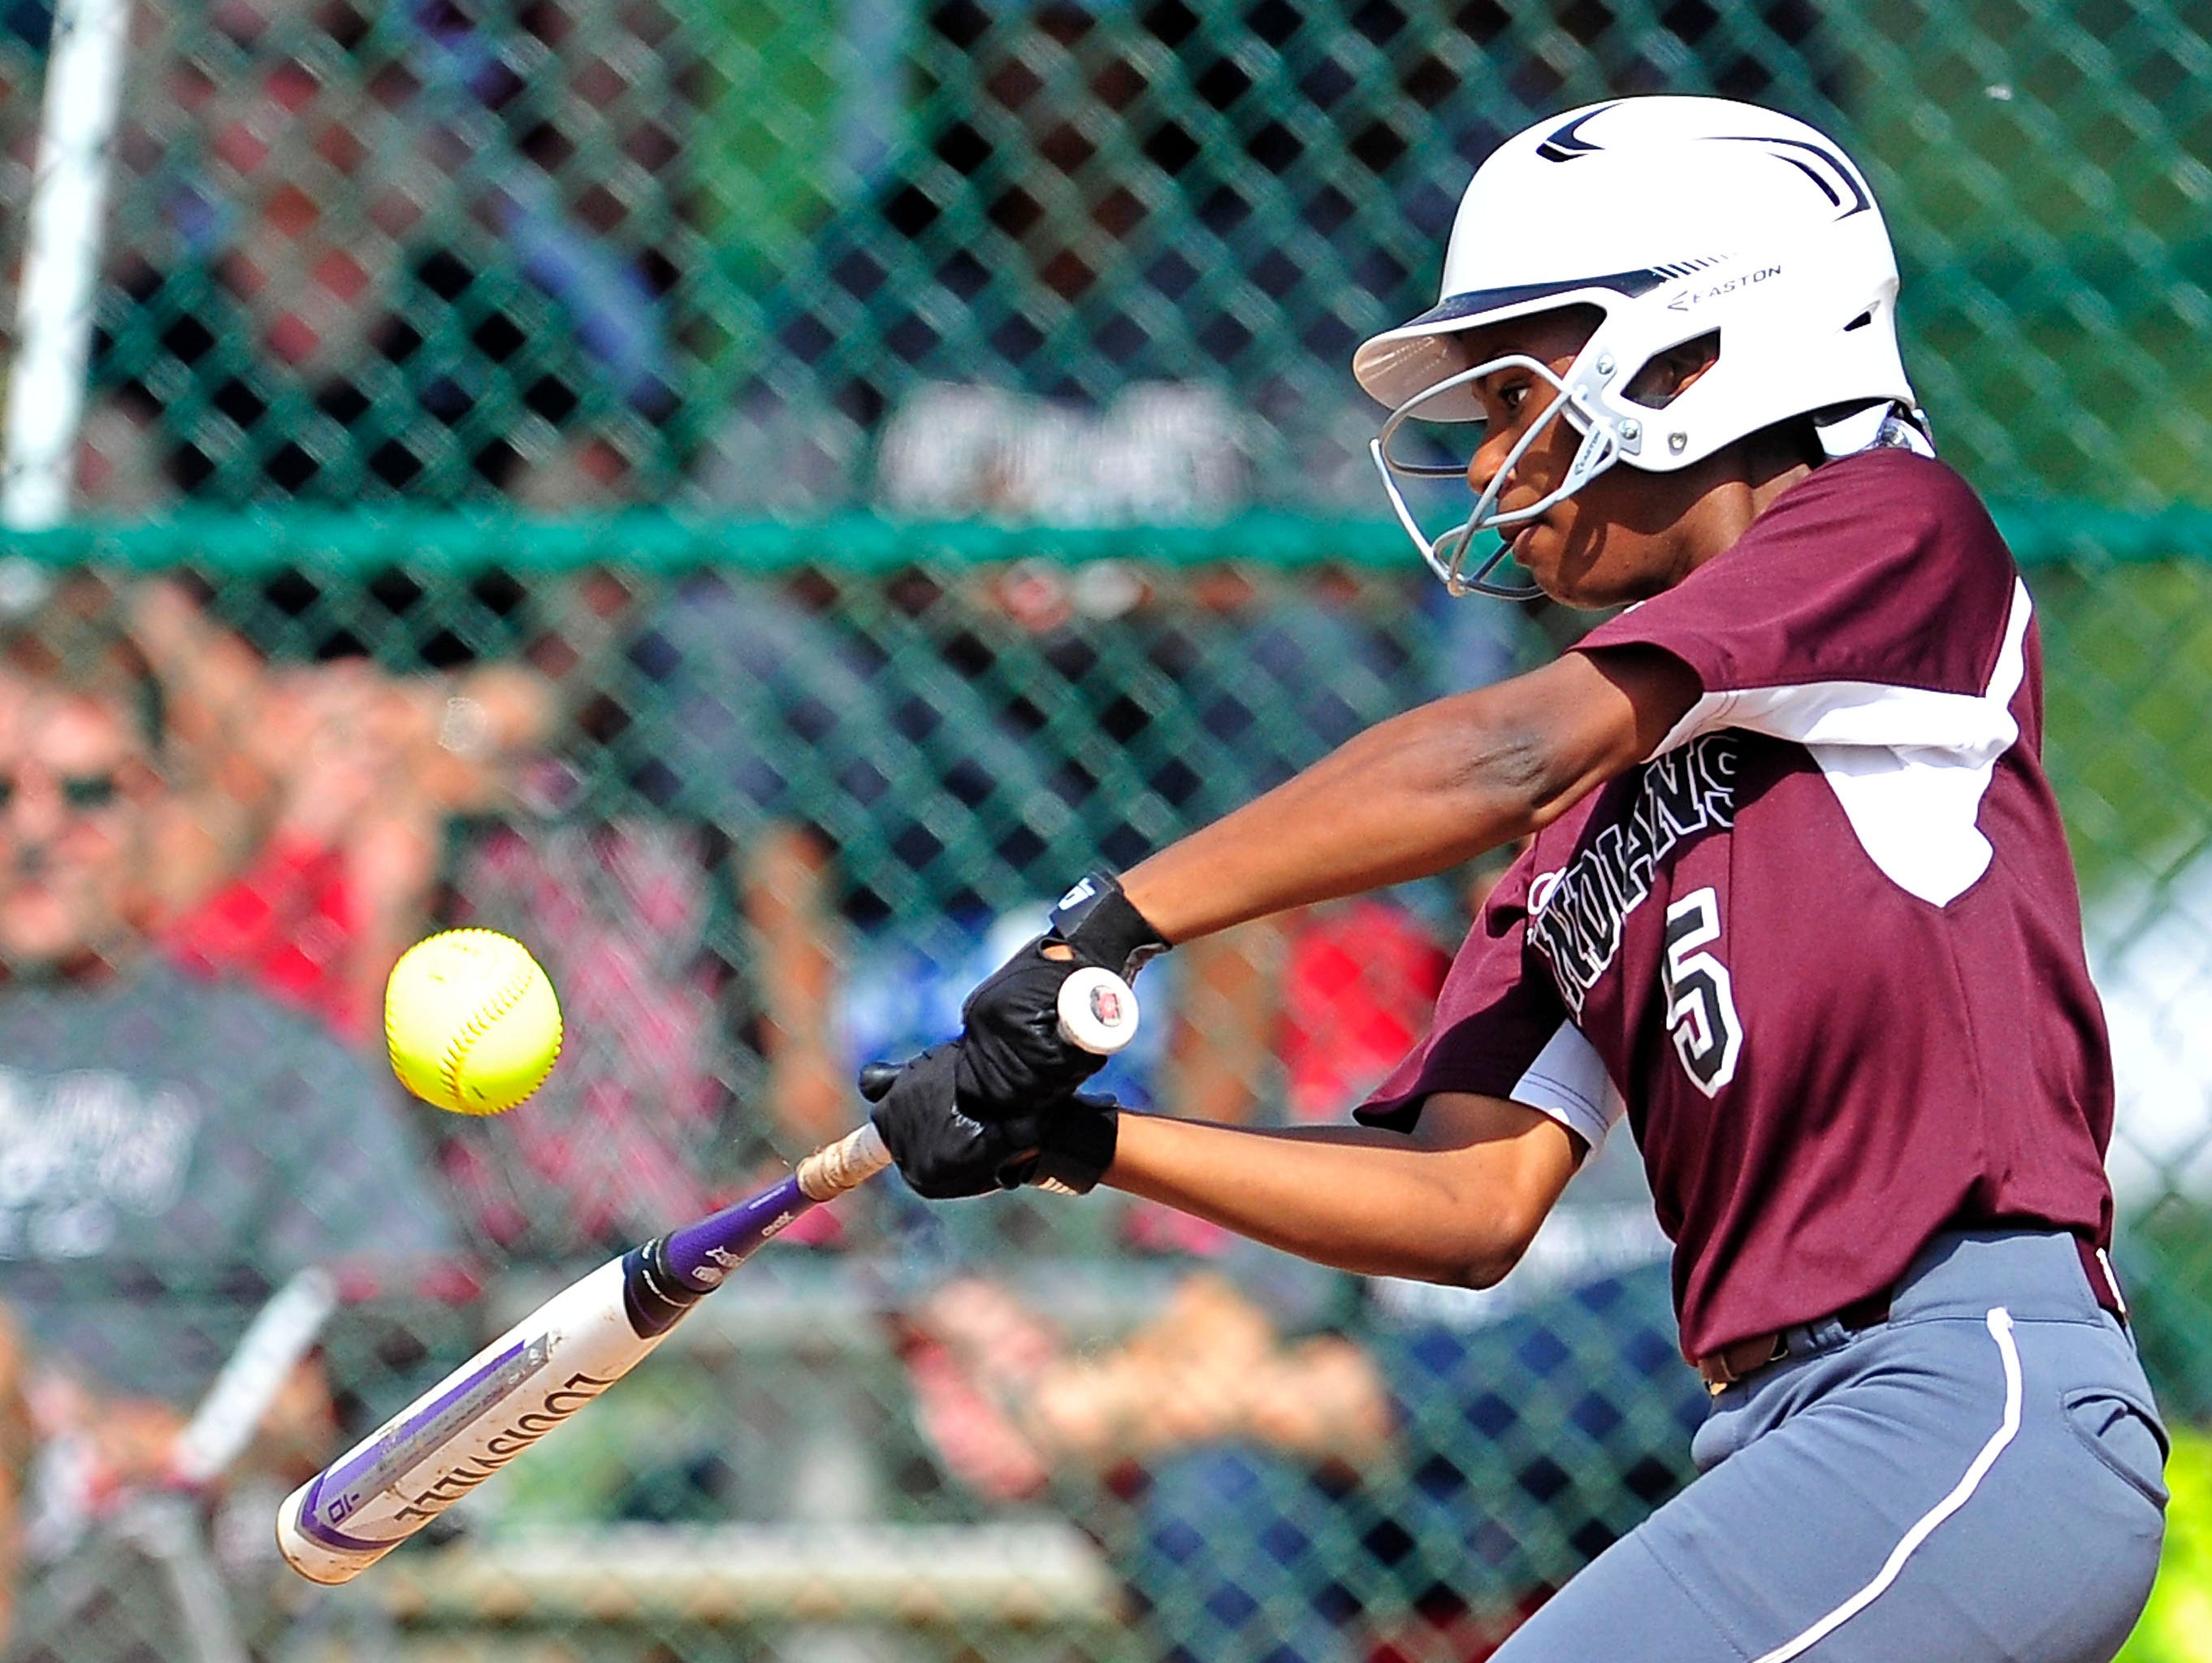 East Robertson's Dee Dee Dunn hits the ball against Marion County during Tuesday's Class A tourney game.